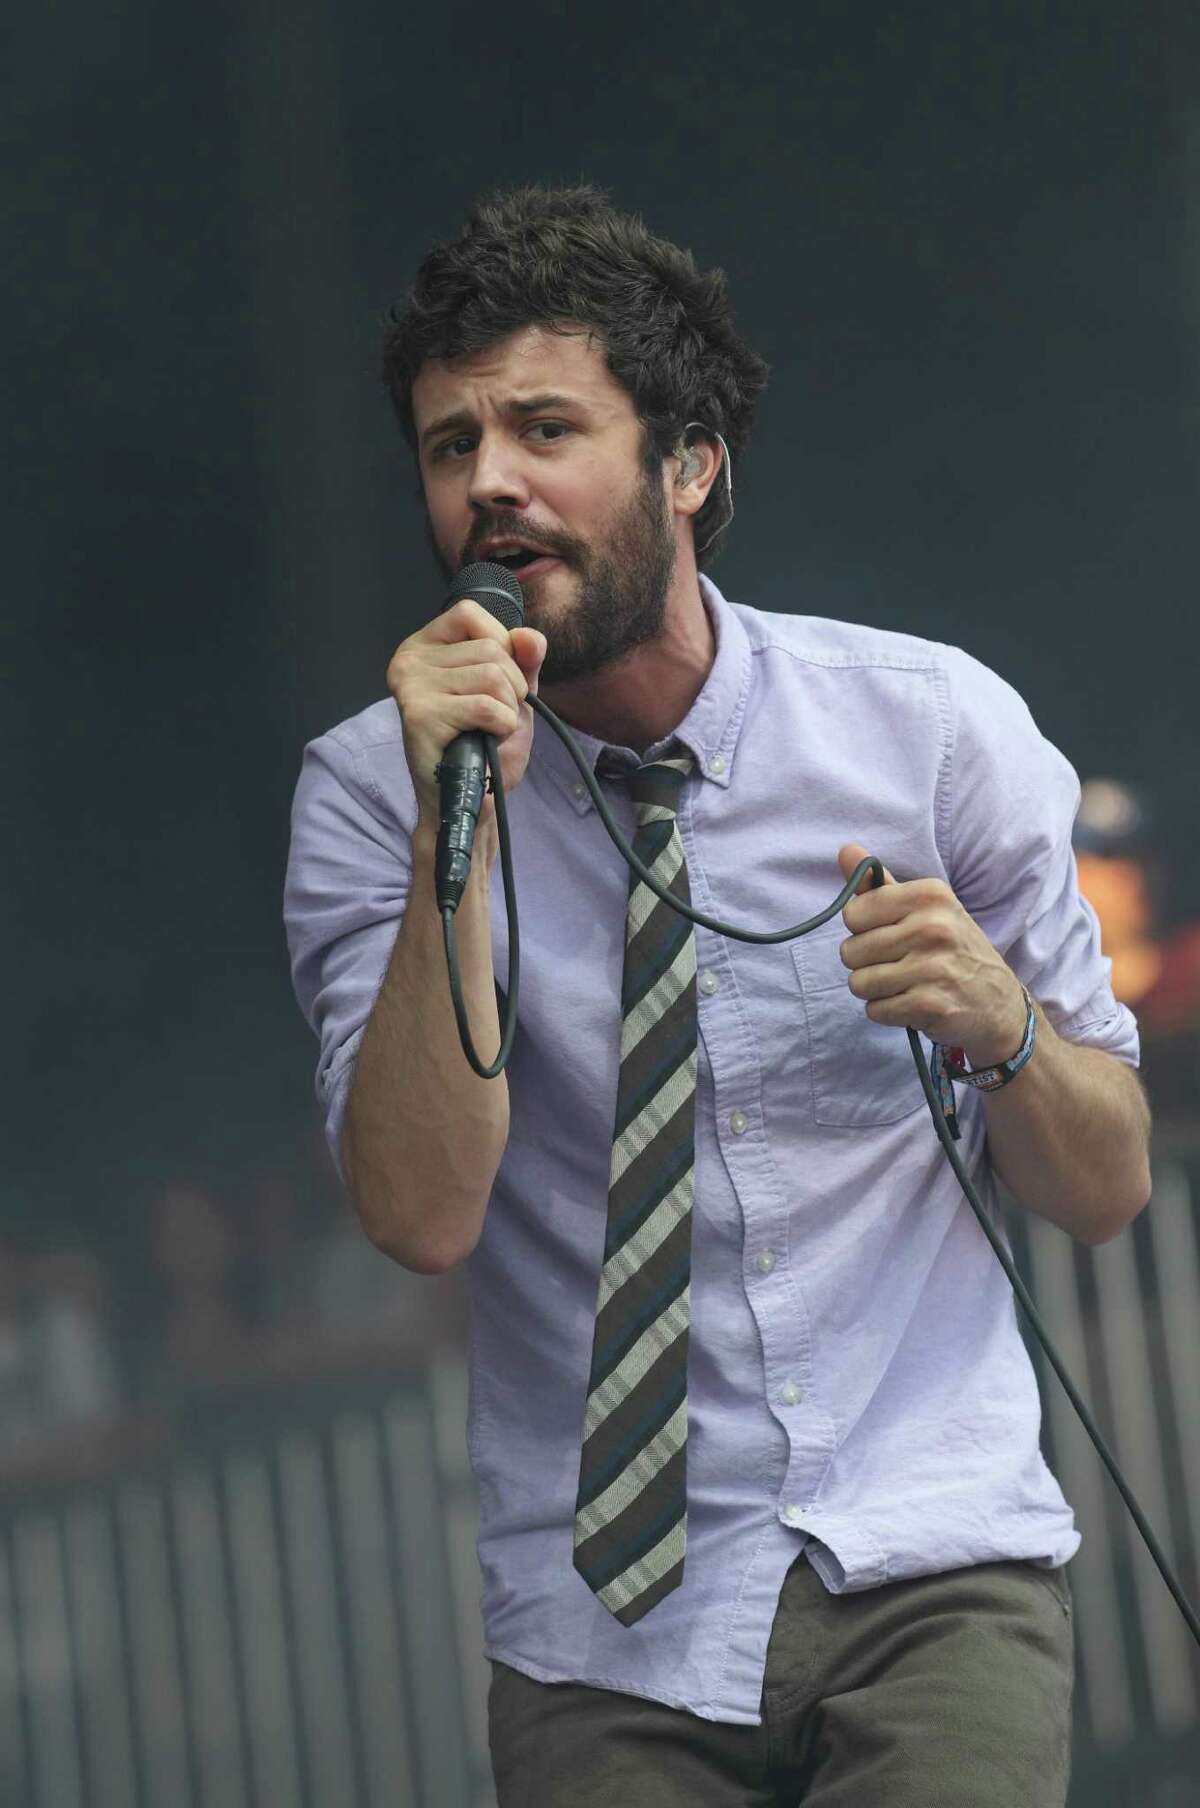 Michael Angelakos of the electro-pop band Passion Pit performs at the Lollapalooza music festival on opening day in Chicago's Grant Park on Friday, Aug. 3, 2012. (Photo by Steve C. Mitchell/Invision/AP)